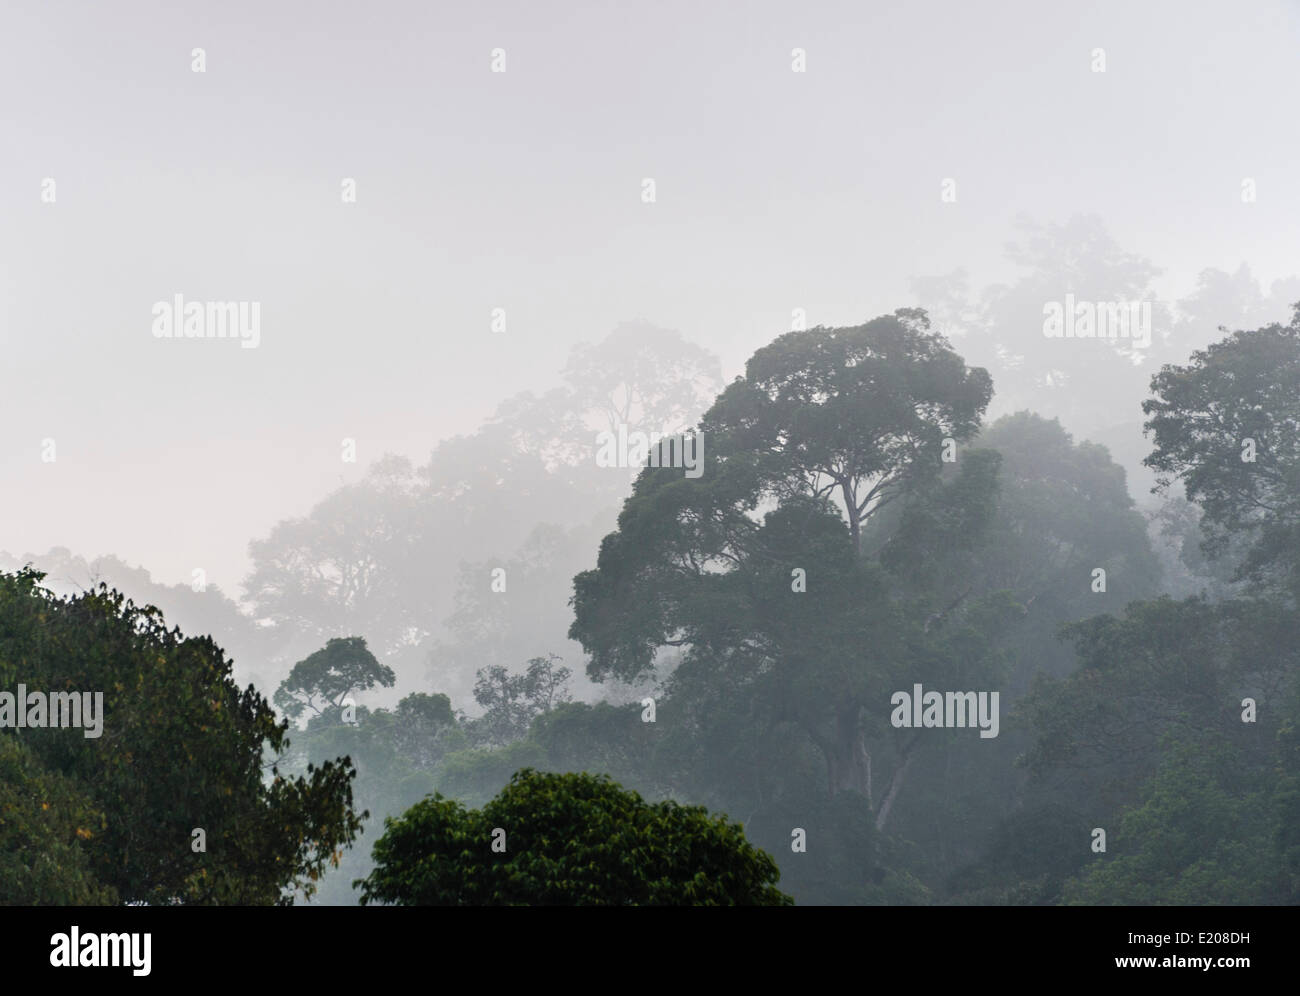 Jungle in the mist, silhouettes of trees, Thekkadi, Periyar Dam, Tamil Nadu, India - Stock Image